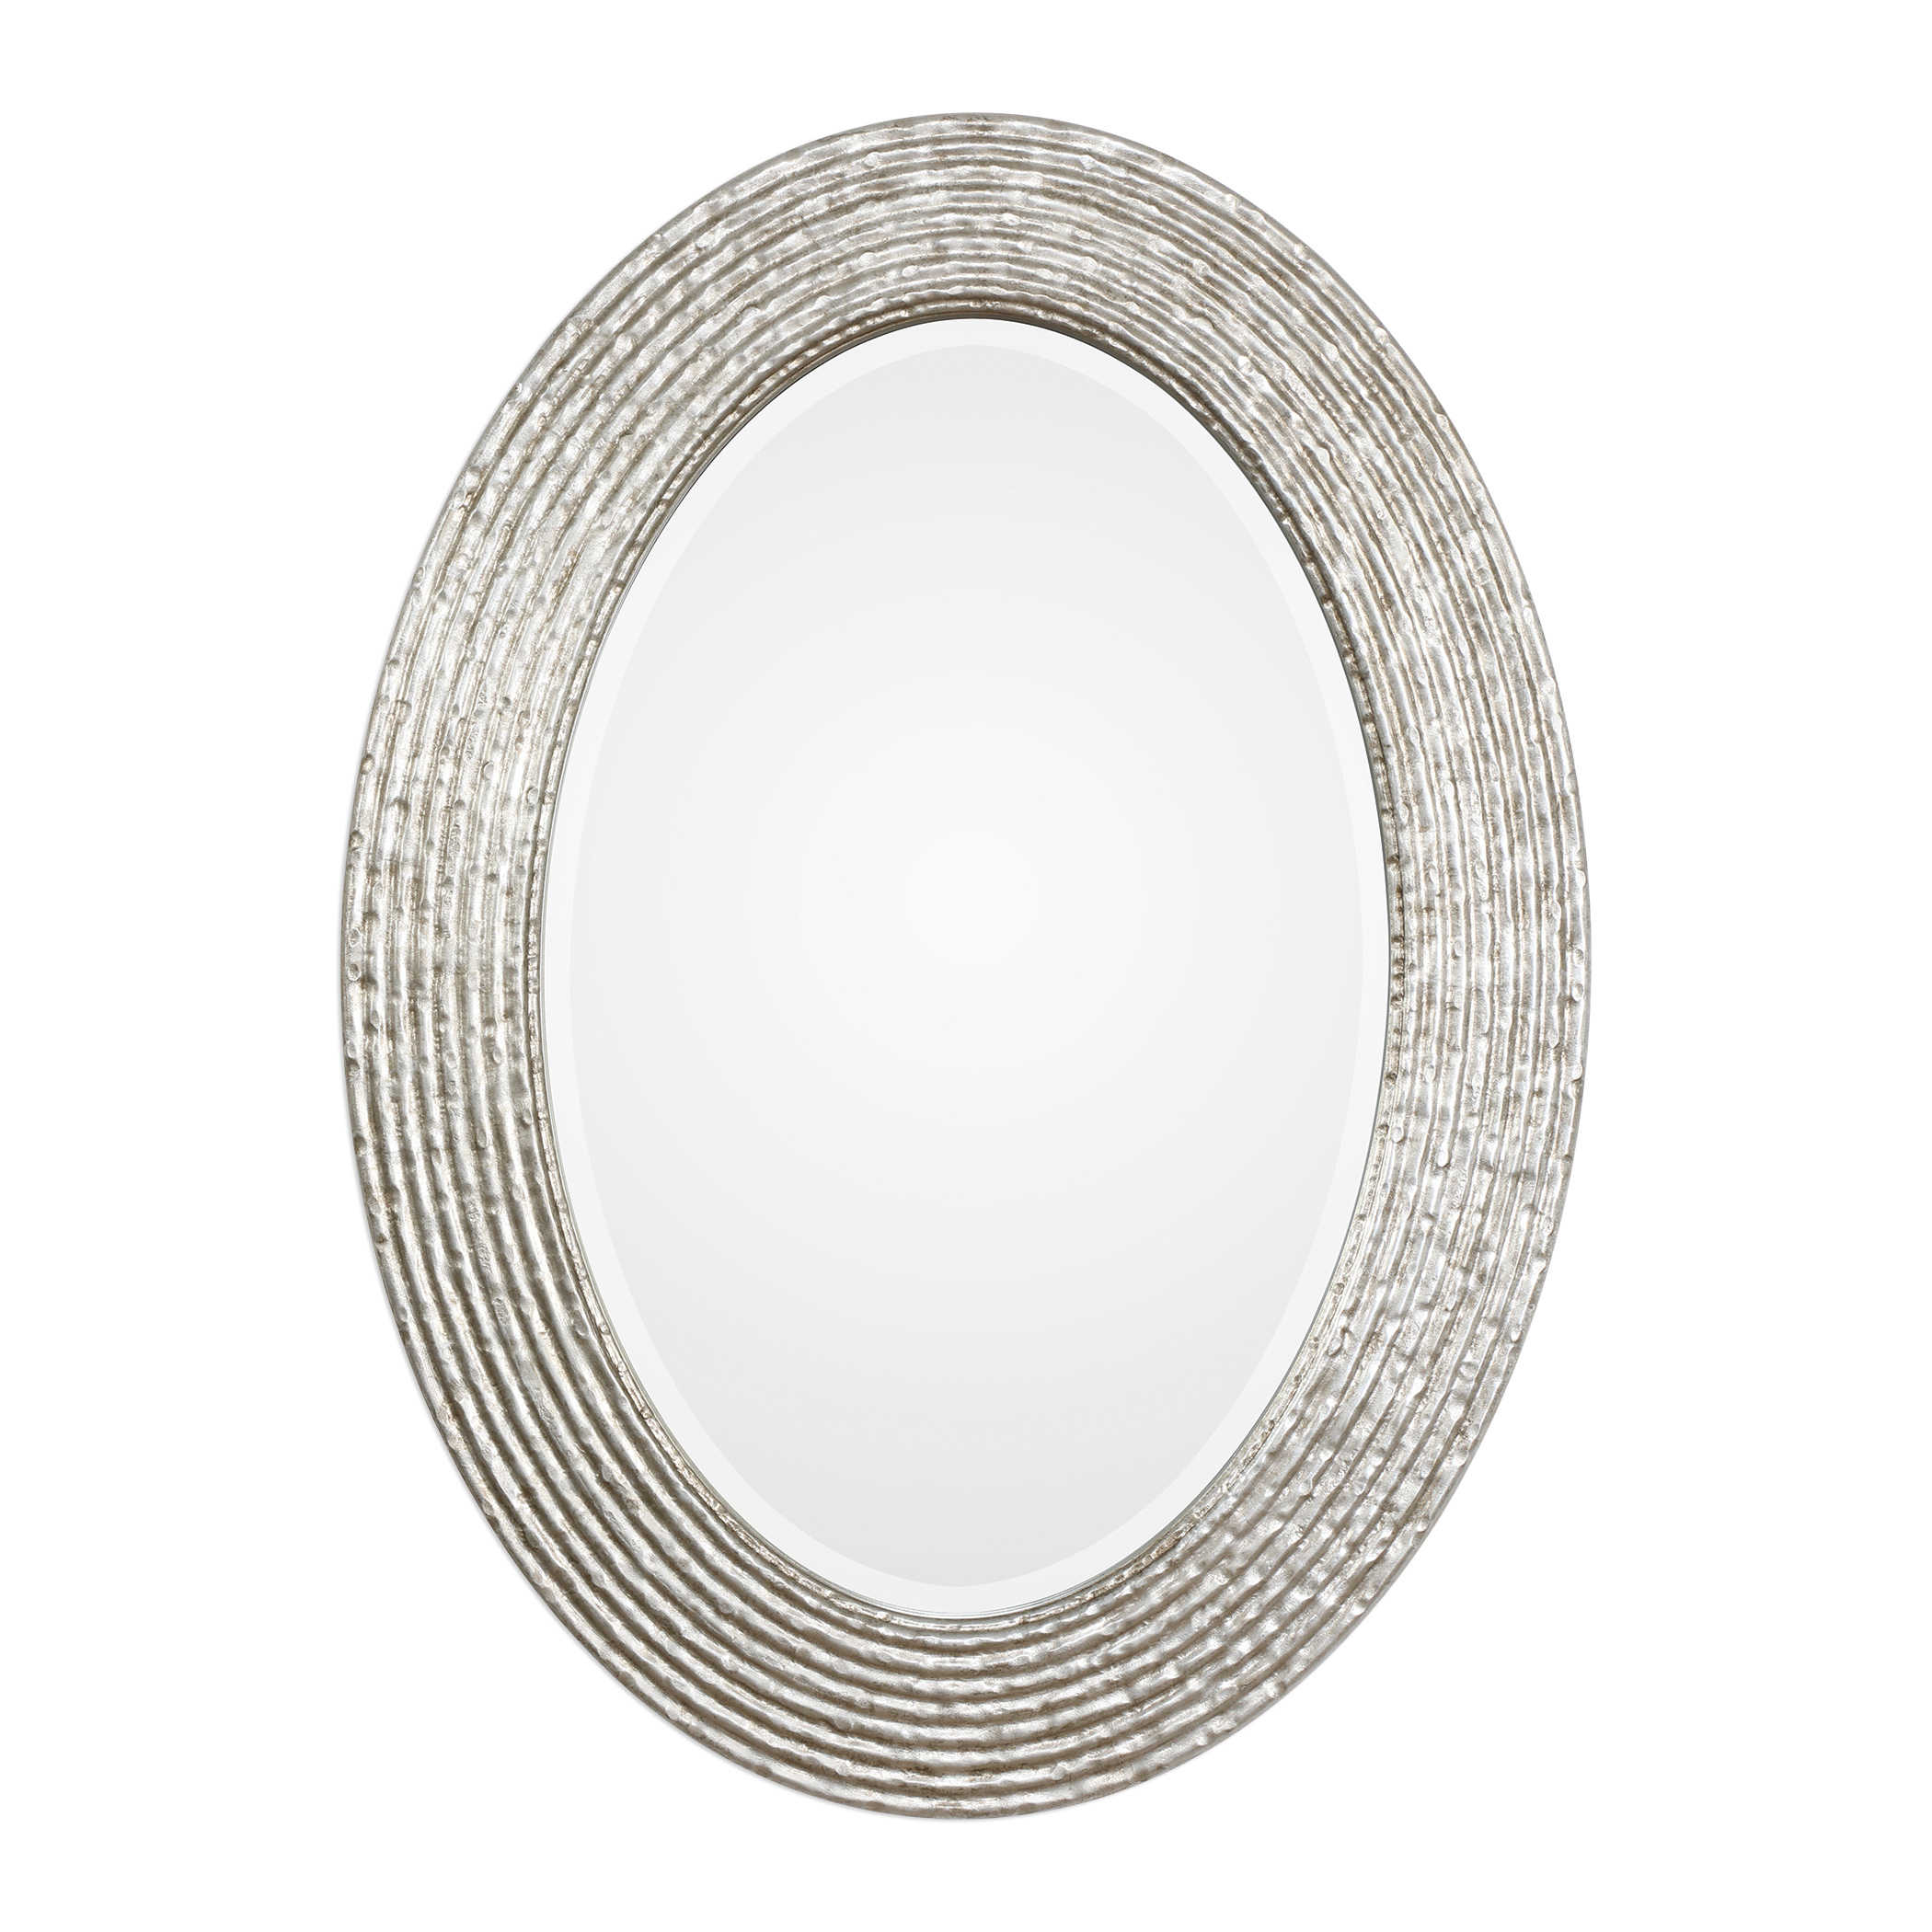 Burnished Silver Oval Mirror-$278.00